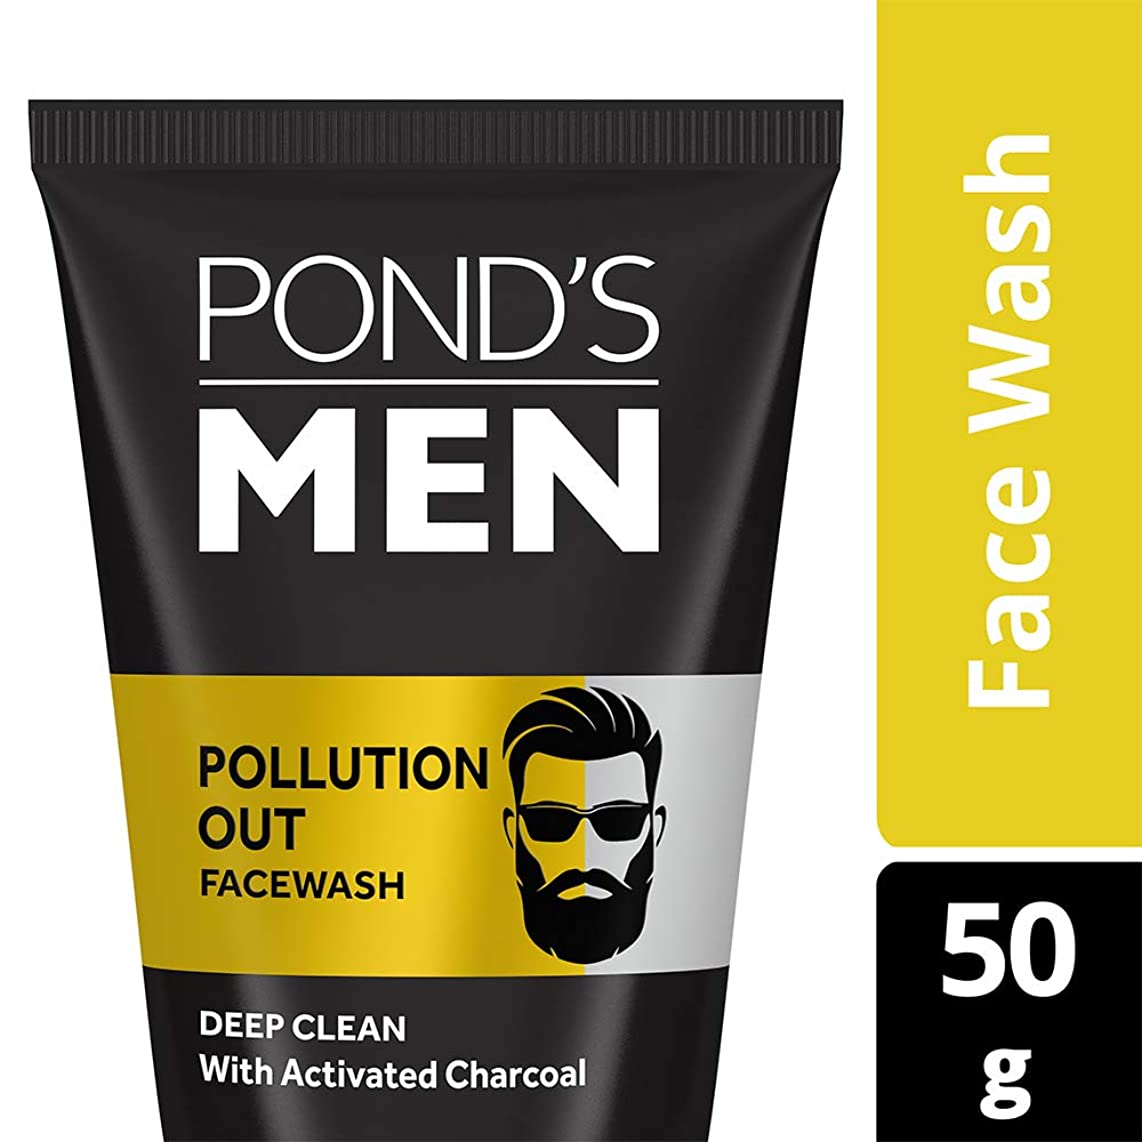 四回熟達したスタジアムPond's Men Pollution Out Activated Charcoal Deep Clean Facewash, 50 g